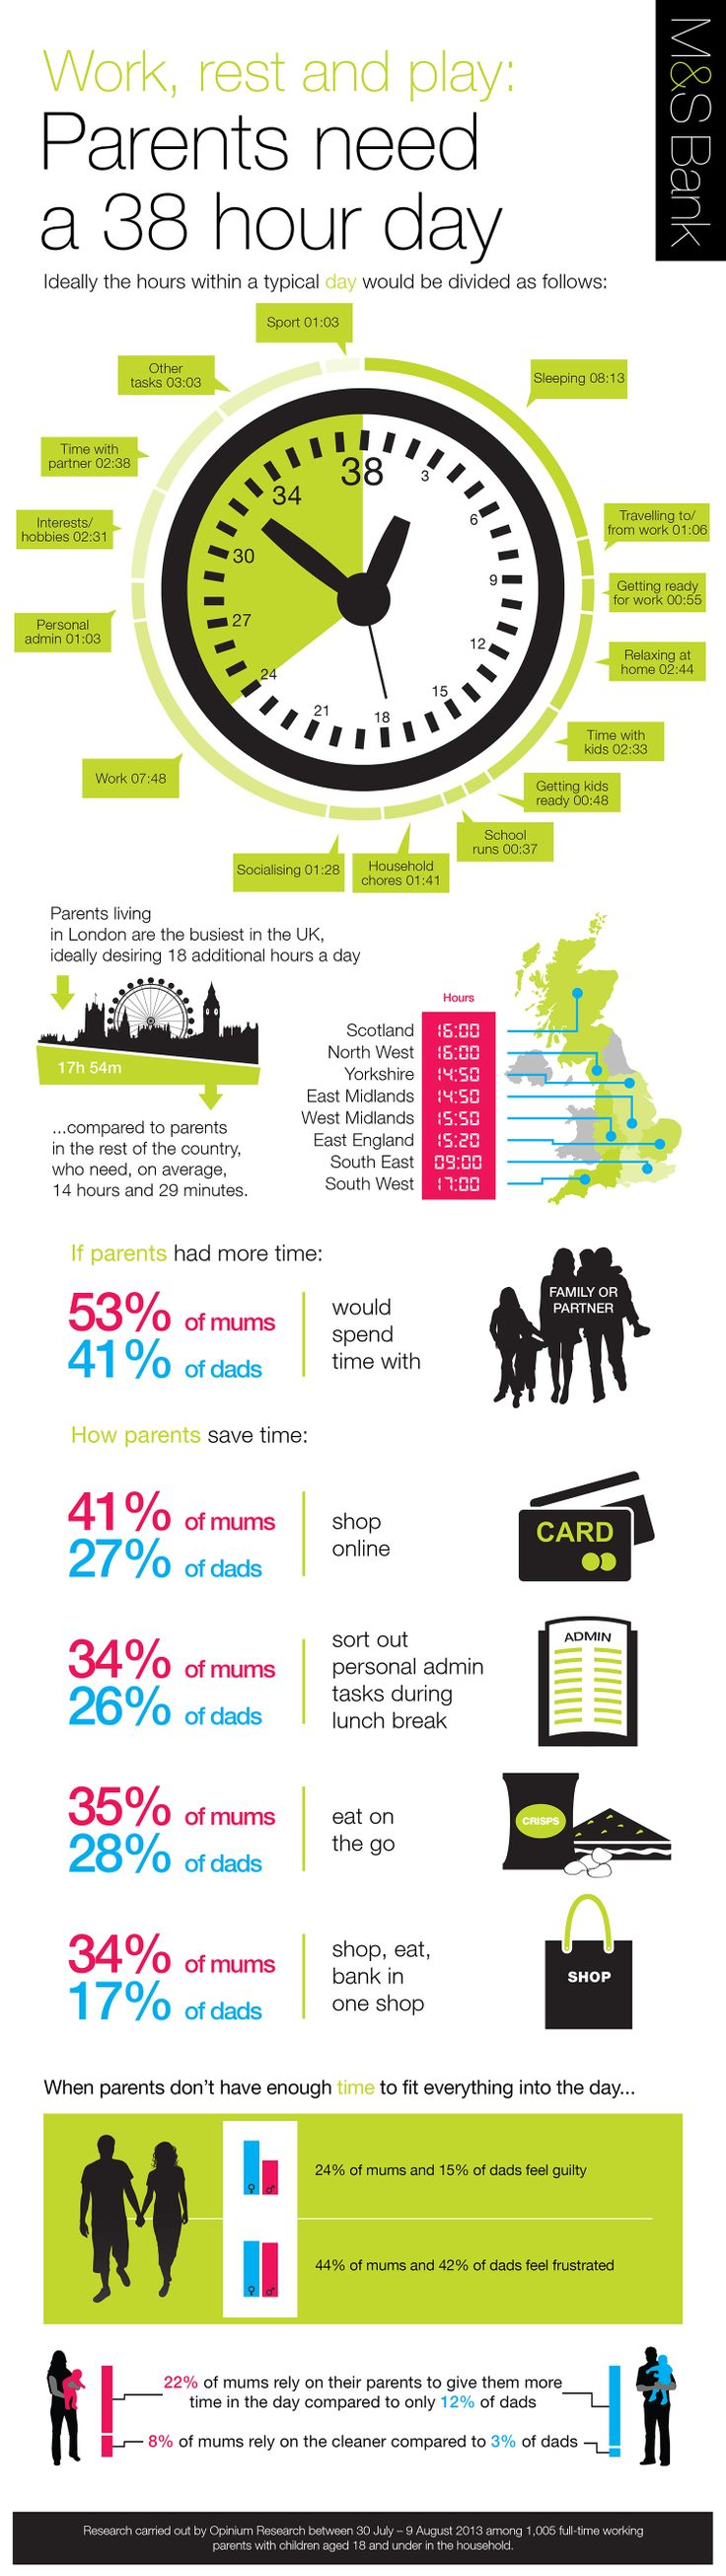 M&S Bank infographic